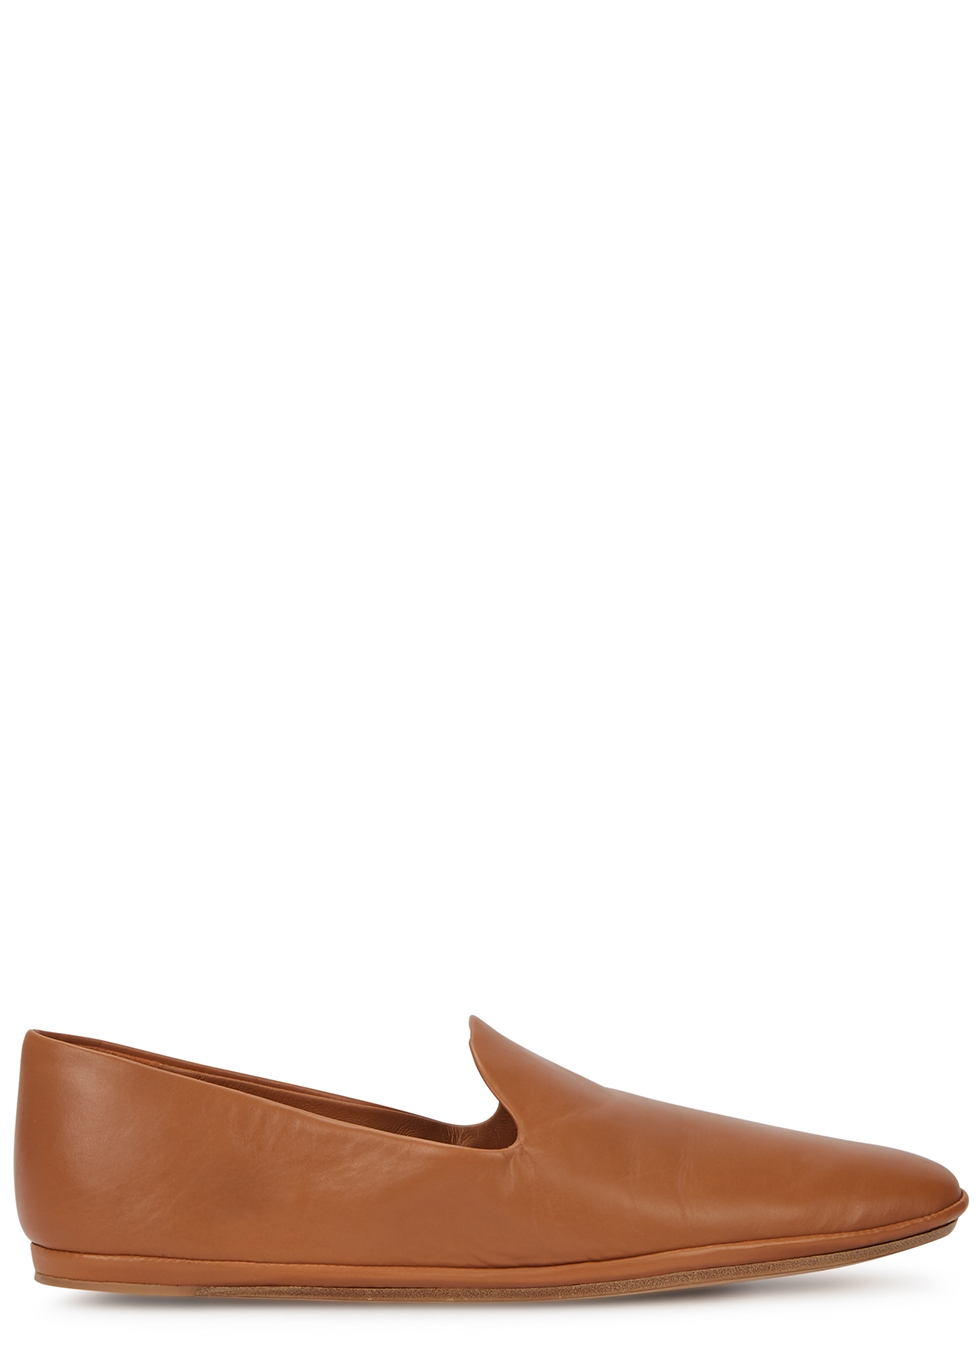 Paz brown leather loafers